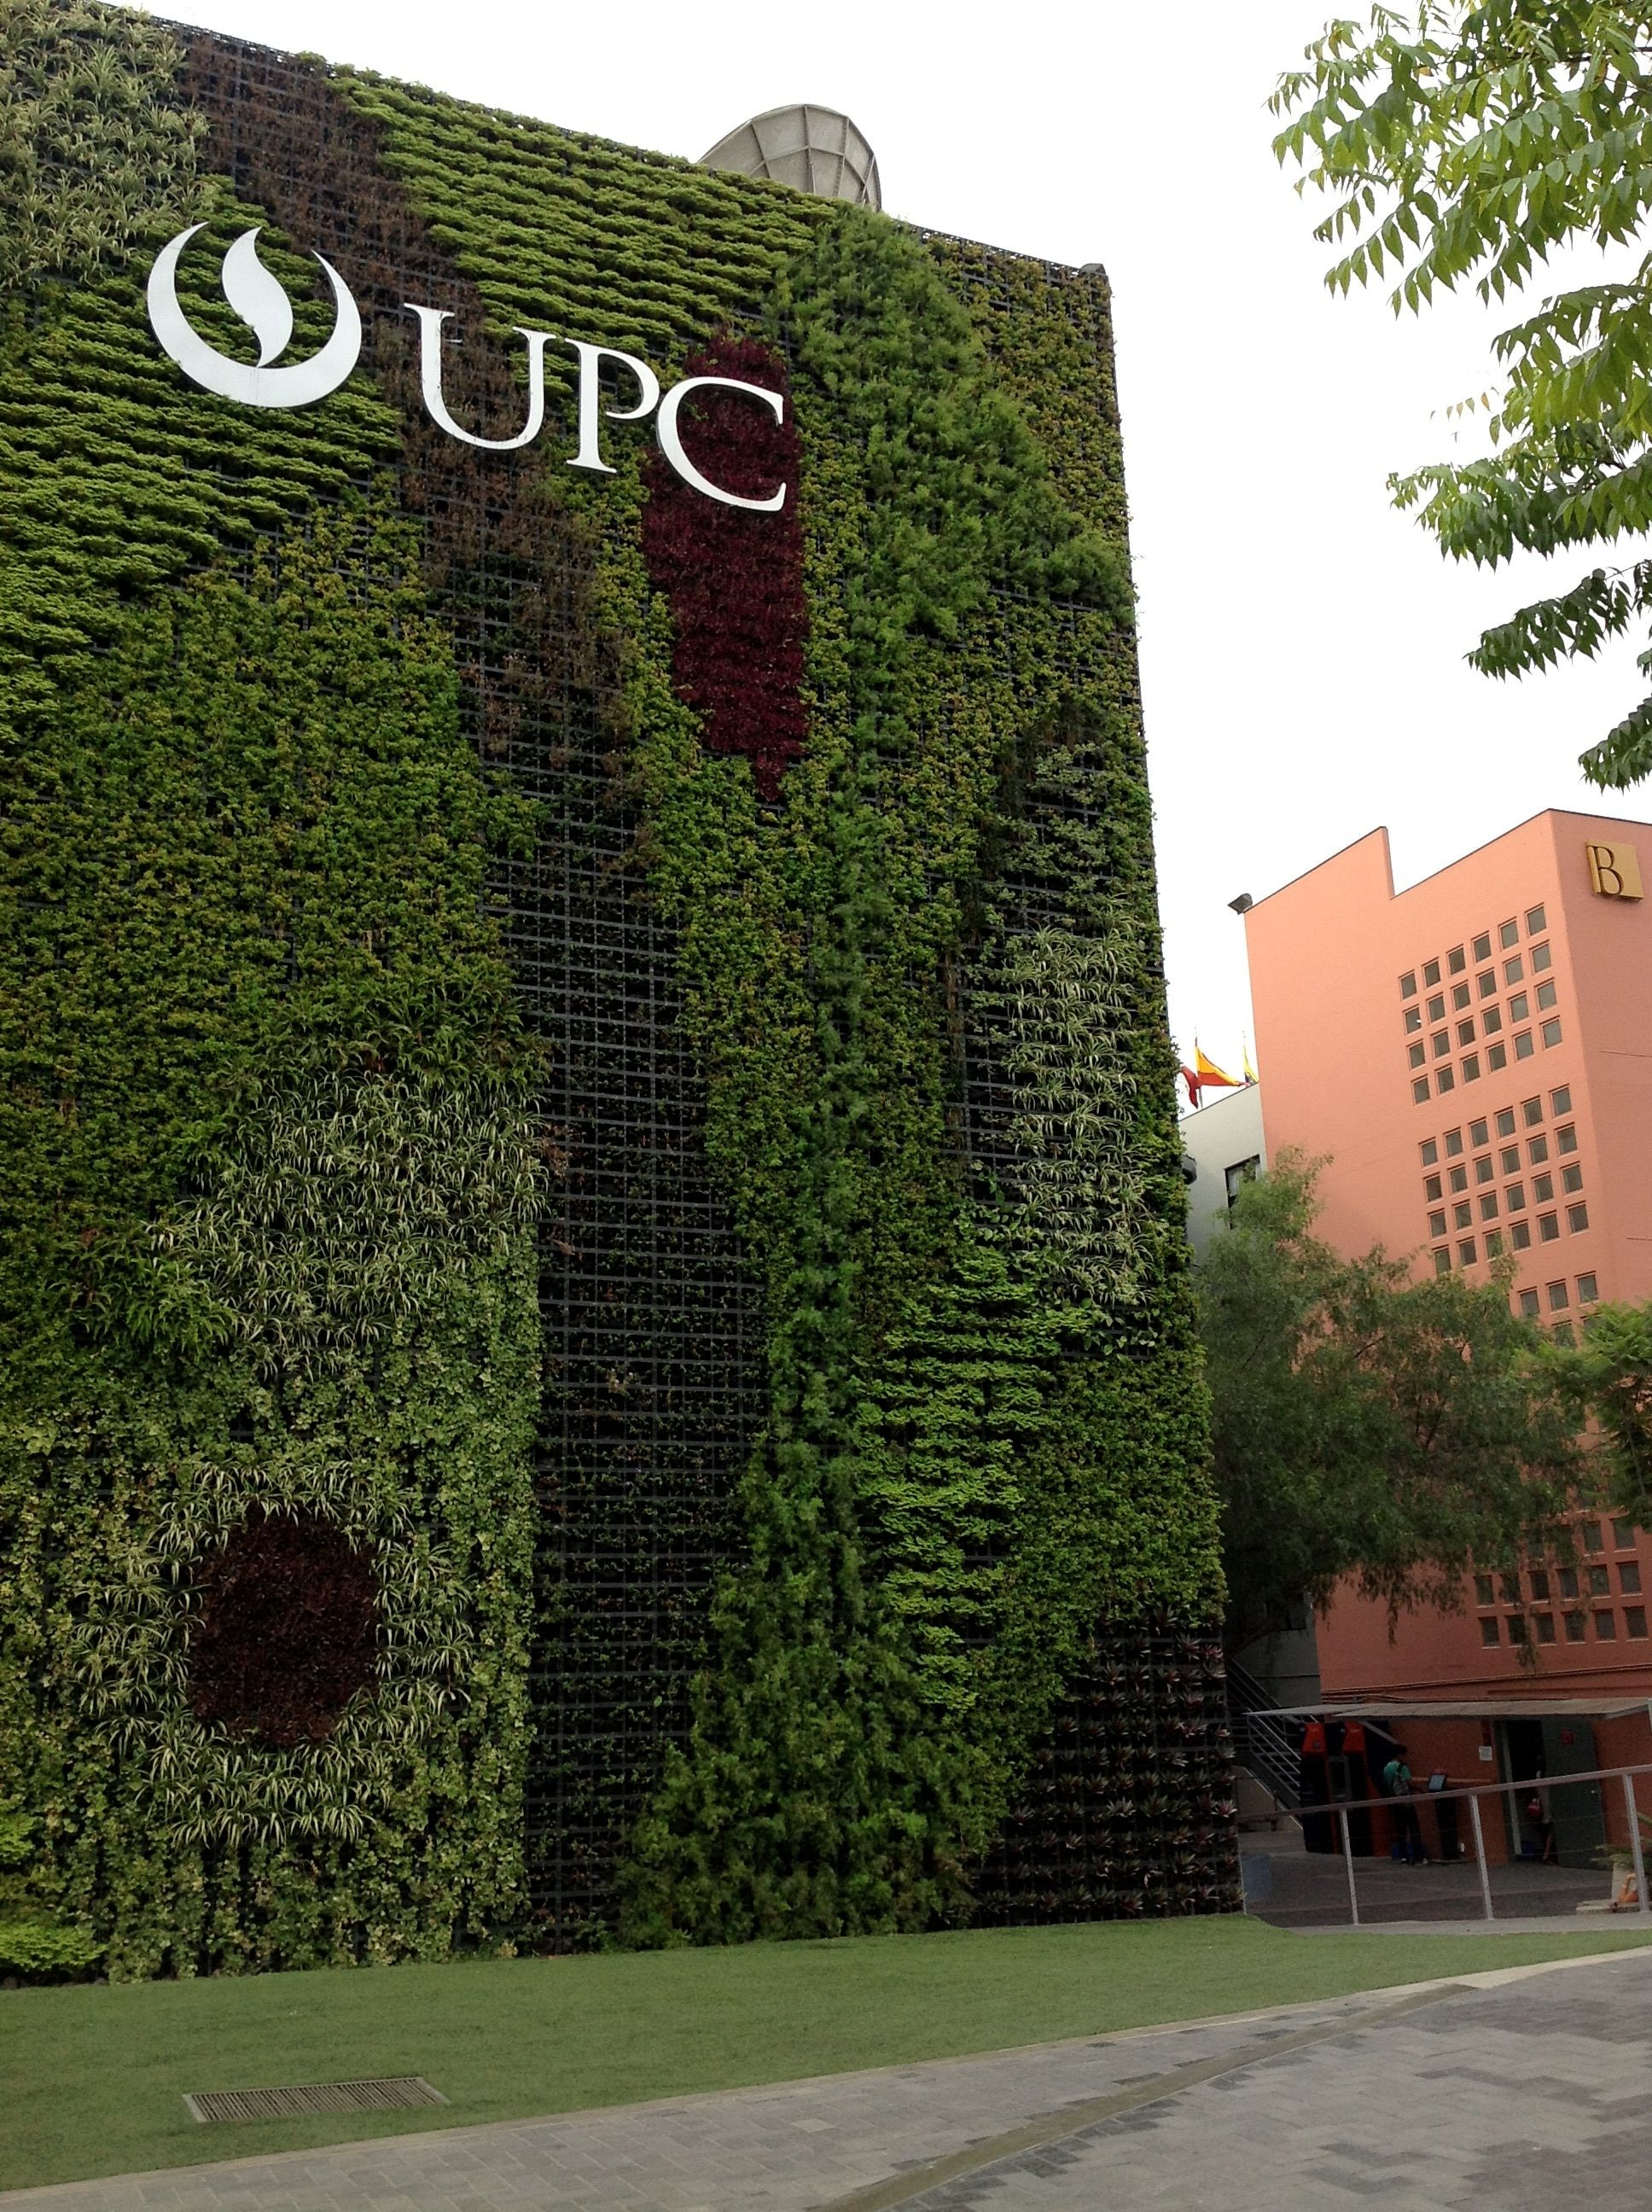 Attraktiv Moos Badematte Referenz Von Classrooms With Vertical Garden At Upc Main